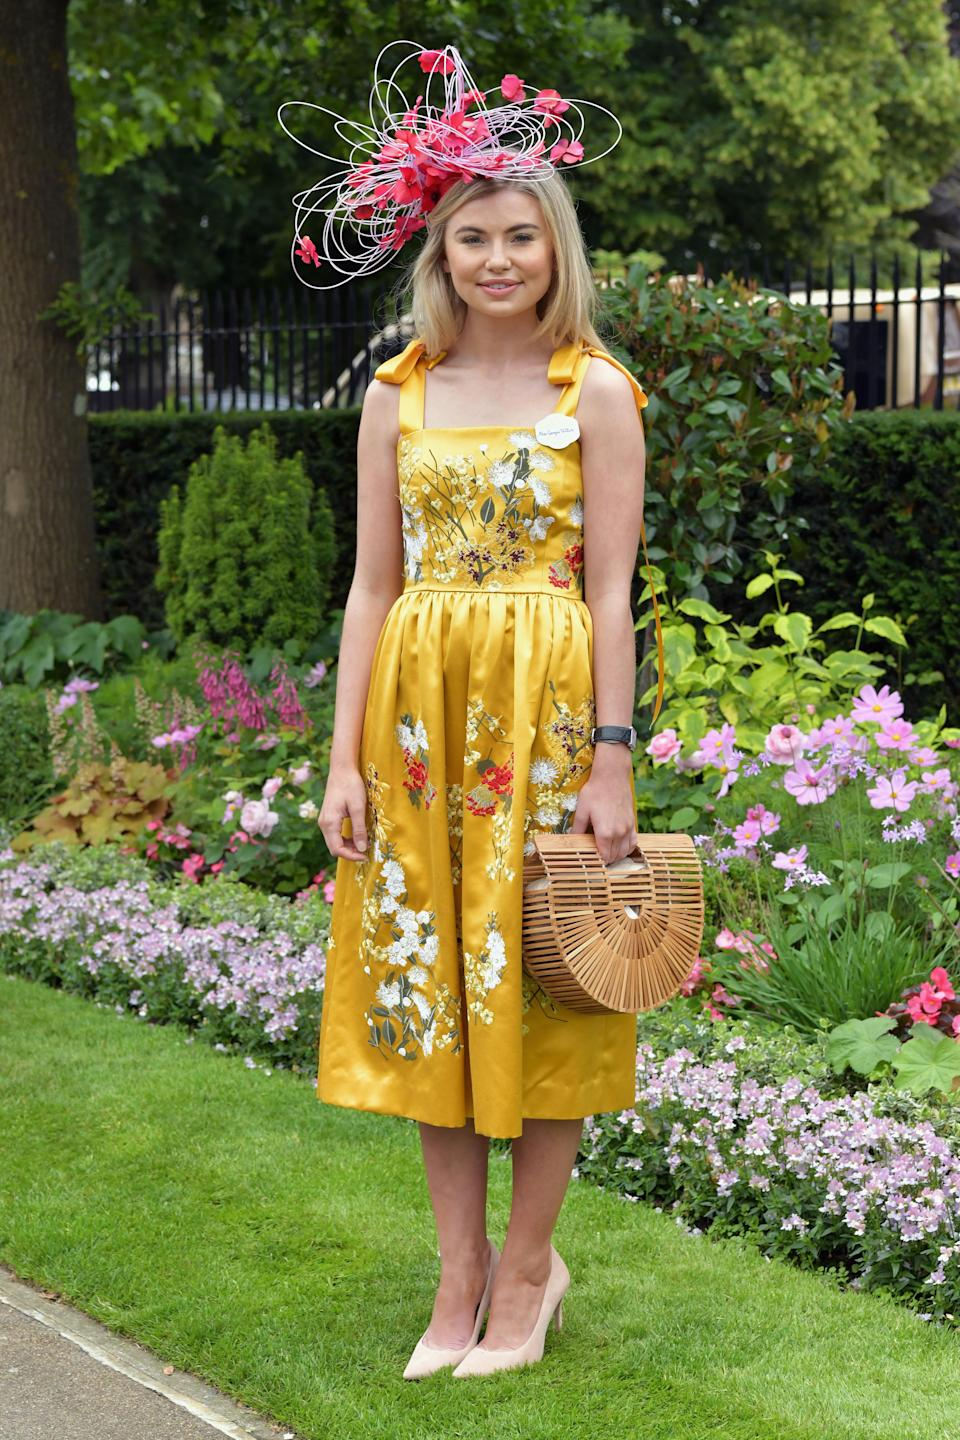 <p>Reality TV star Georgia Toffolo (Toff) enjoyed day two of the races in a cheerful yellow dress and ornate fascinator.<em> [Photo: Getty]</em> </p>